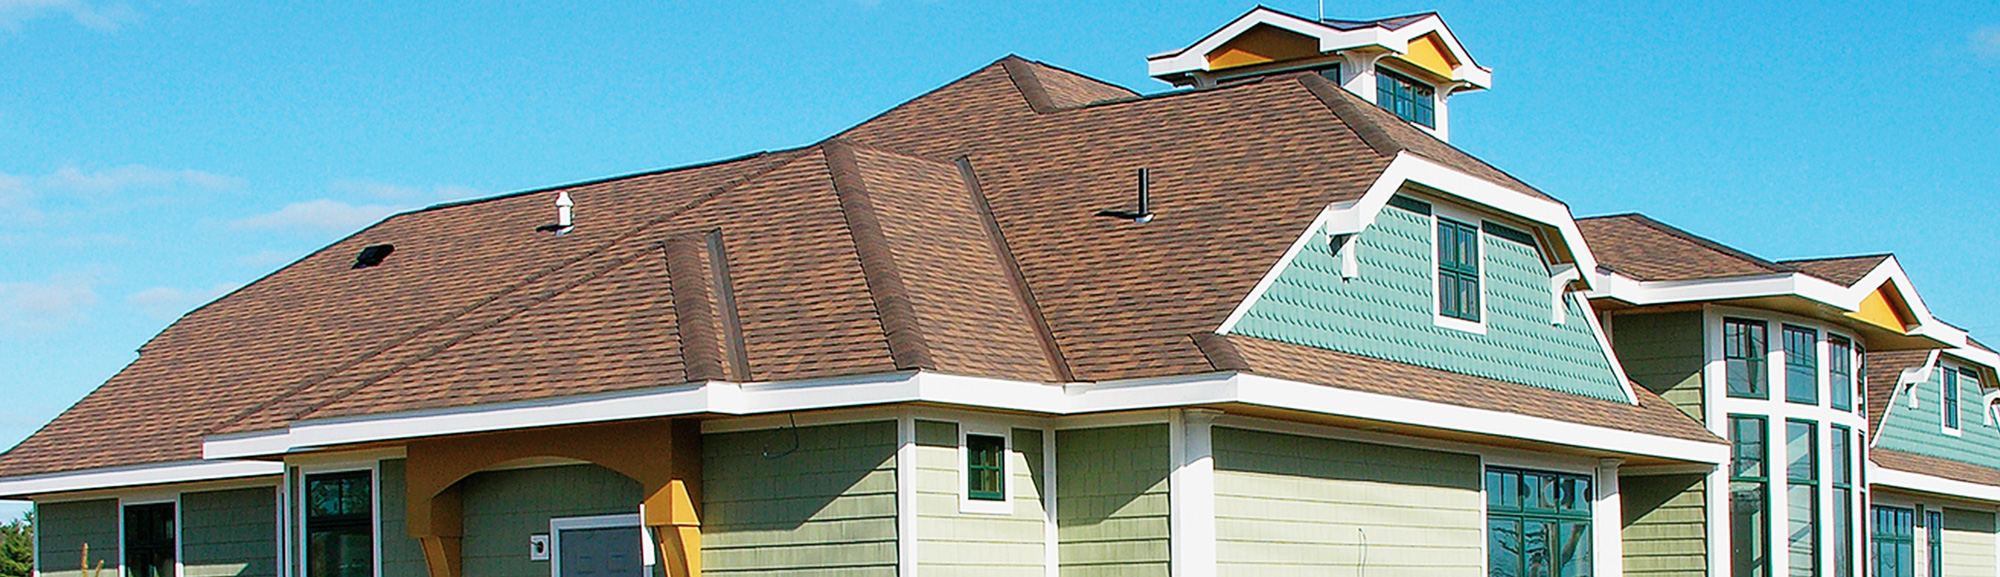 Commercial Shaffer Roofing